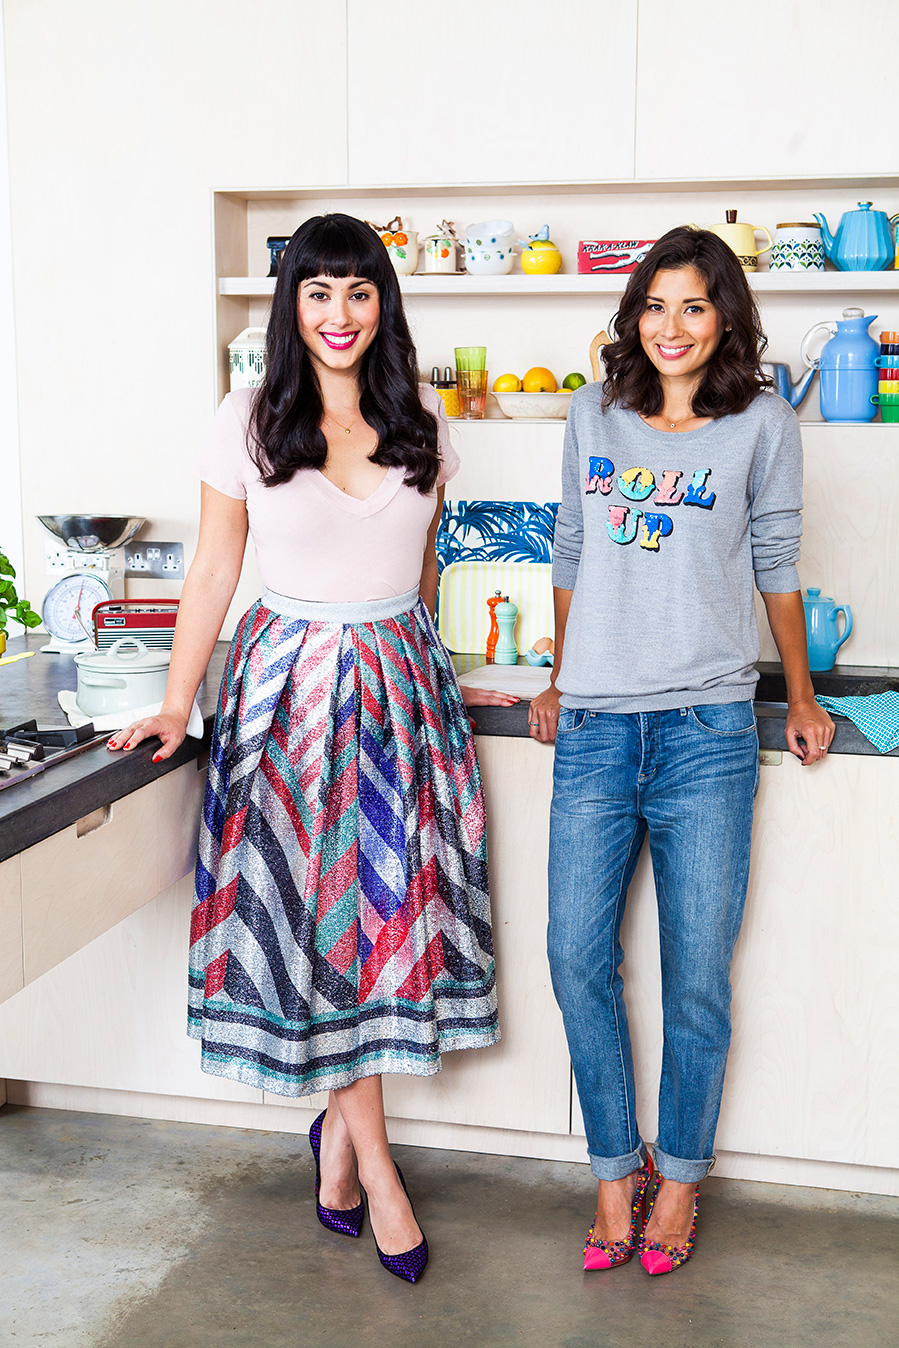 Hemsley Hemsley 7 Day Eating Plan Healthy Detox